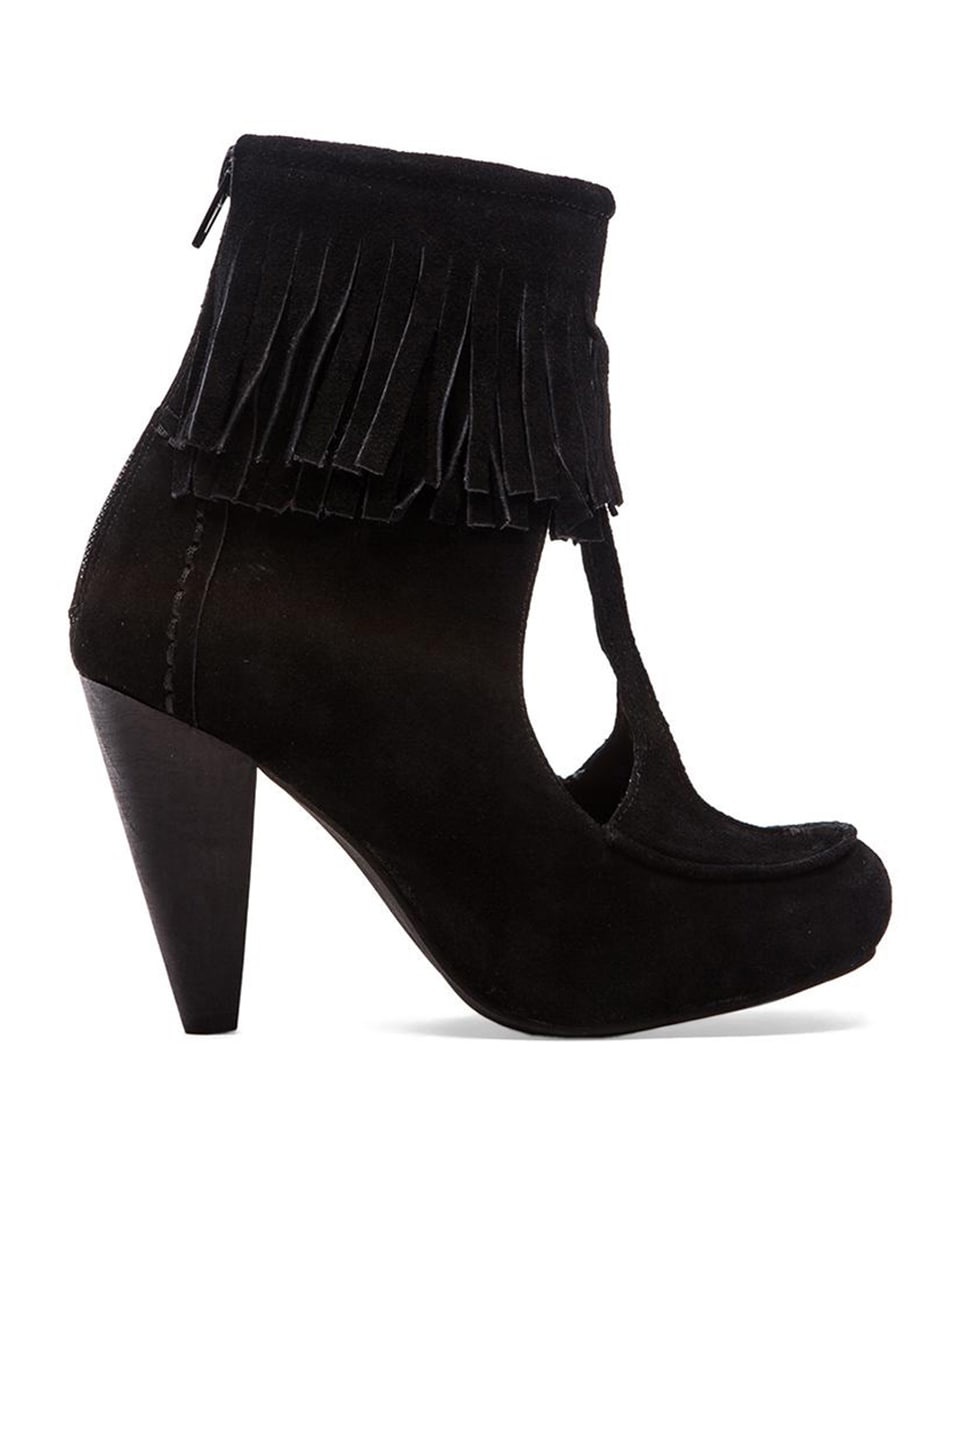 Jeffrey Campbell Fringe Heel in Black Suede